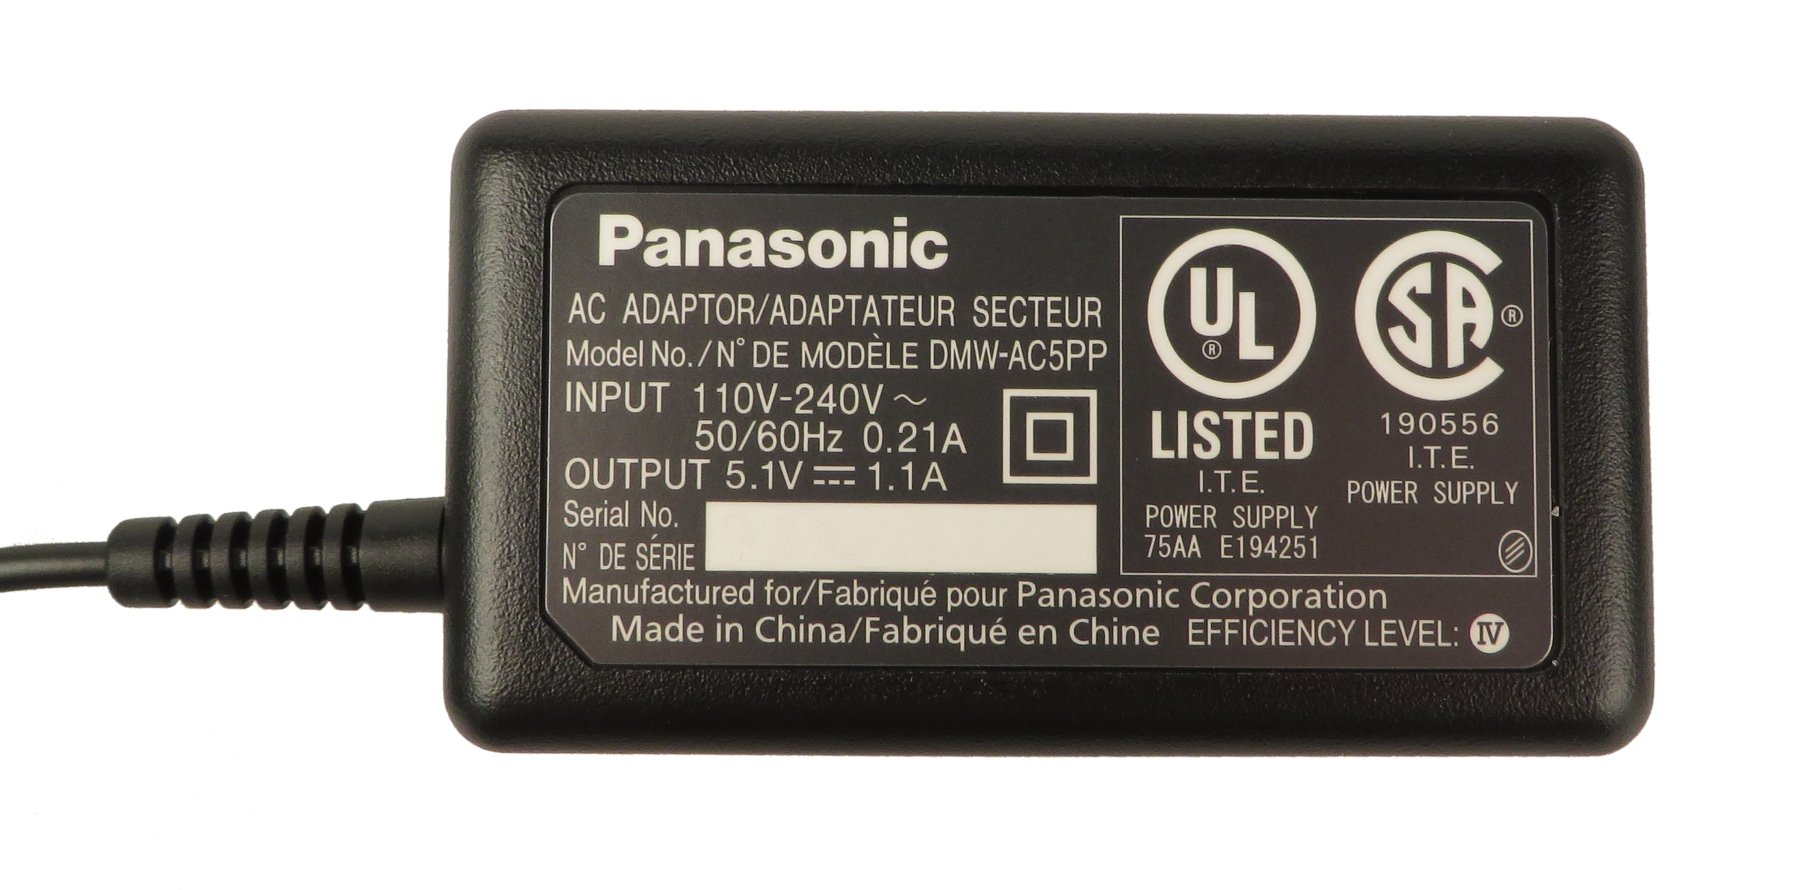 Panasonic DMW-AC5  AC Adaptor for DMC-LX5 DMW-AC5